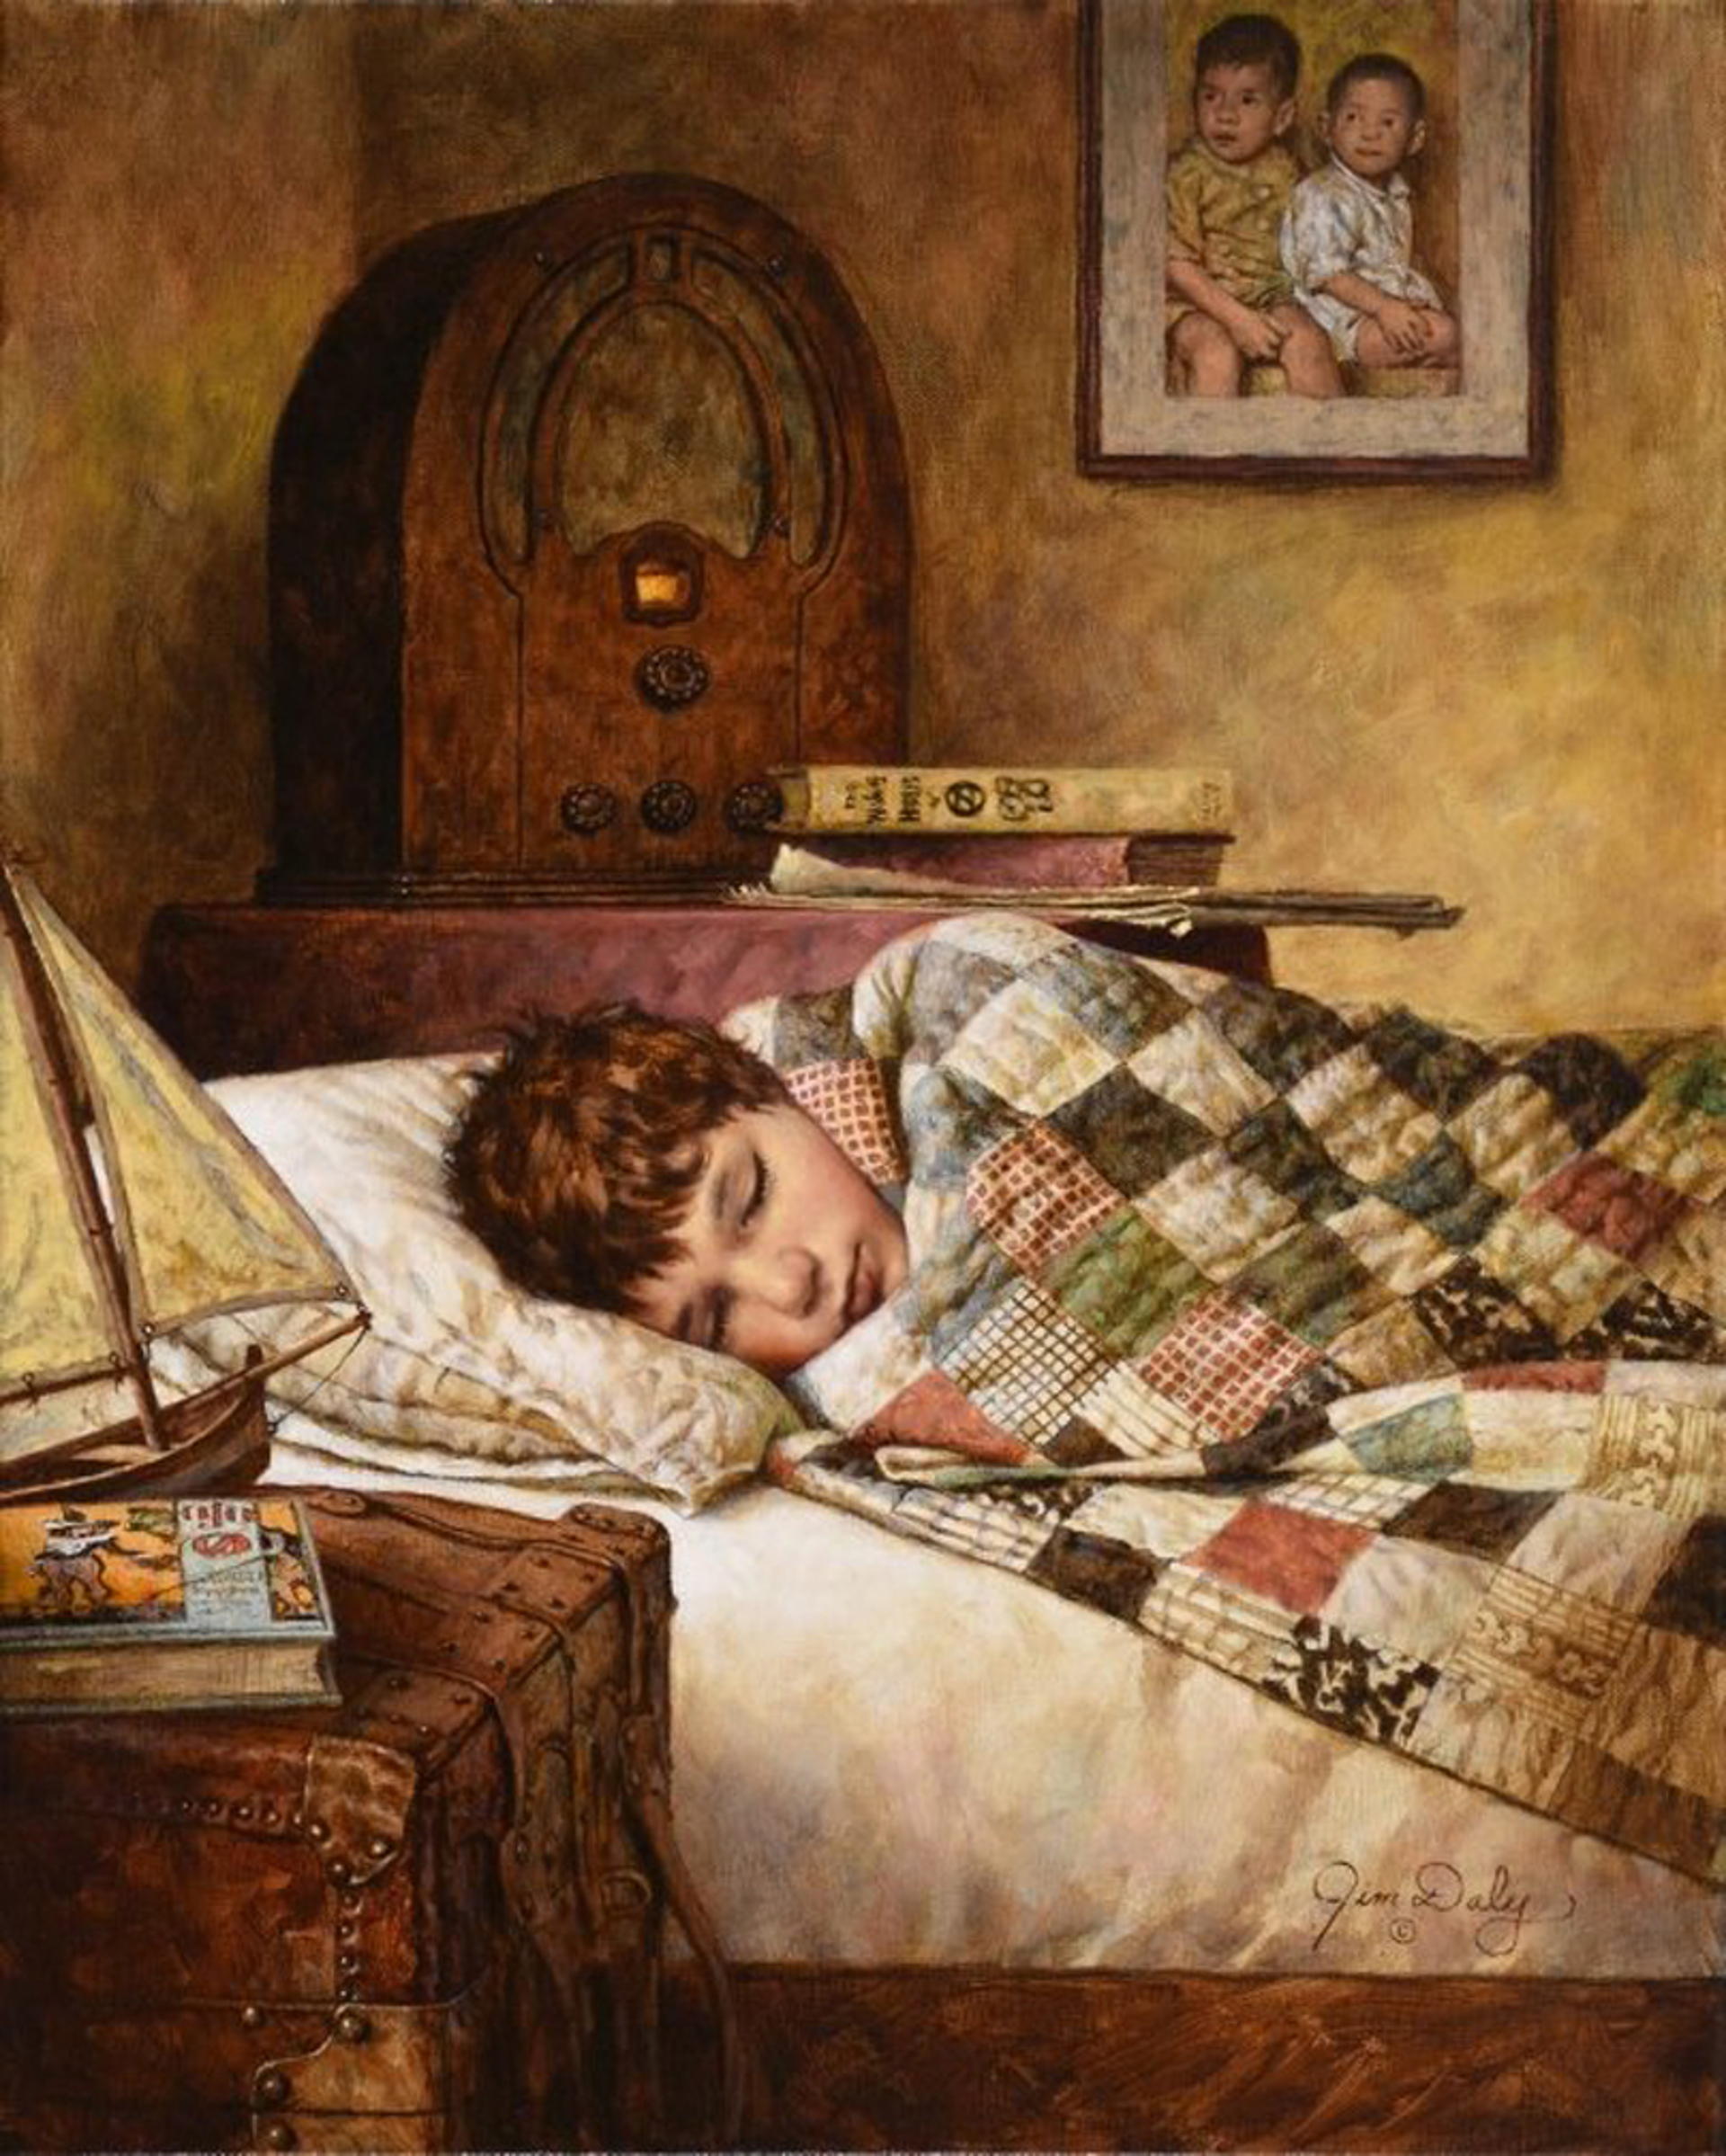 Fast Asleep by Jim Daly